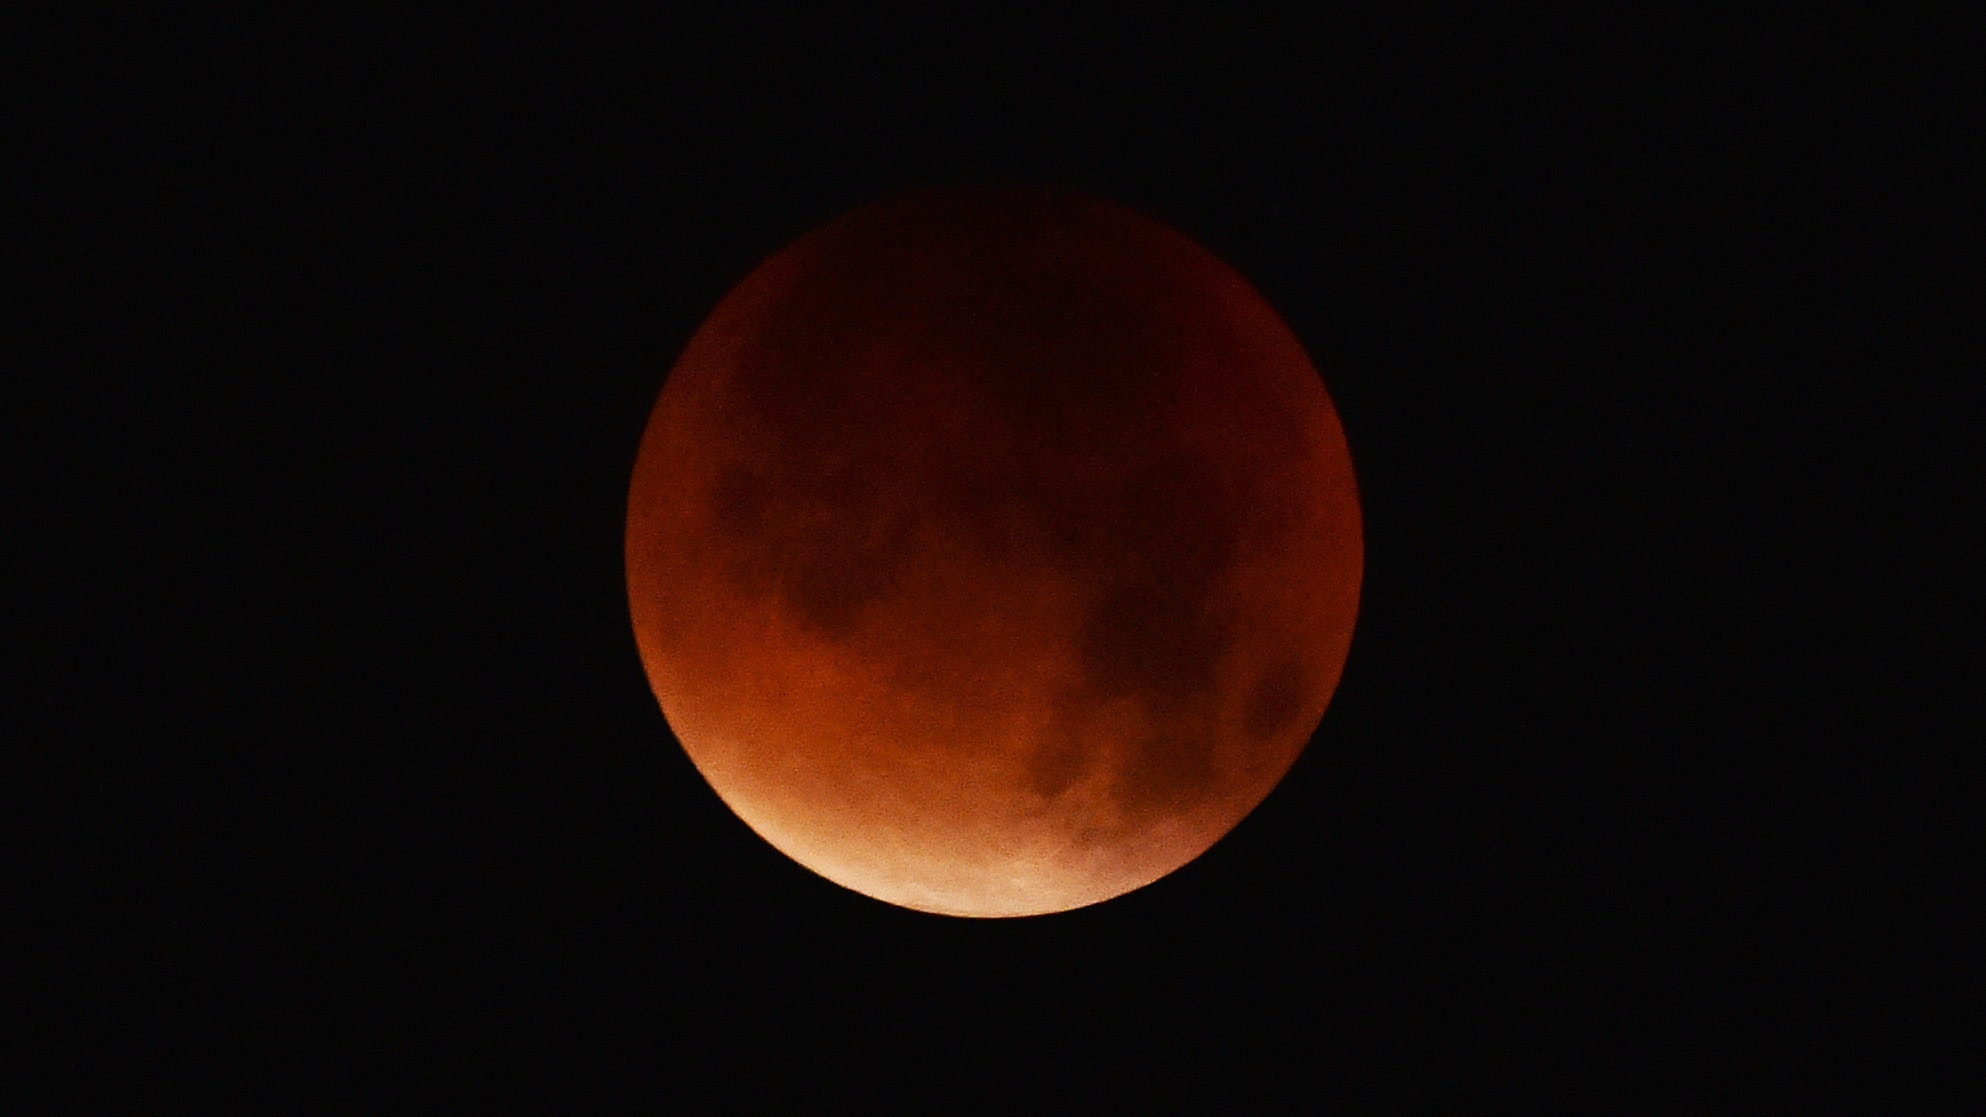 blood moon 2019 utah time - photo #5